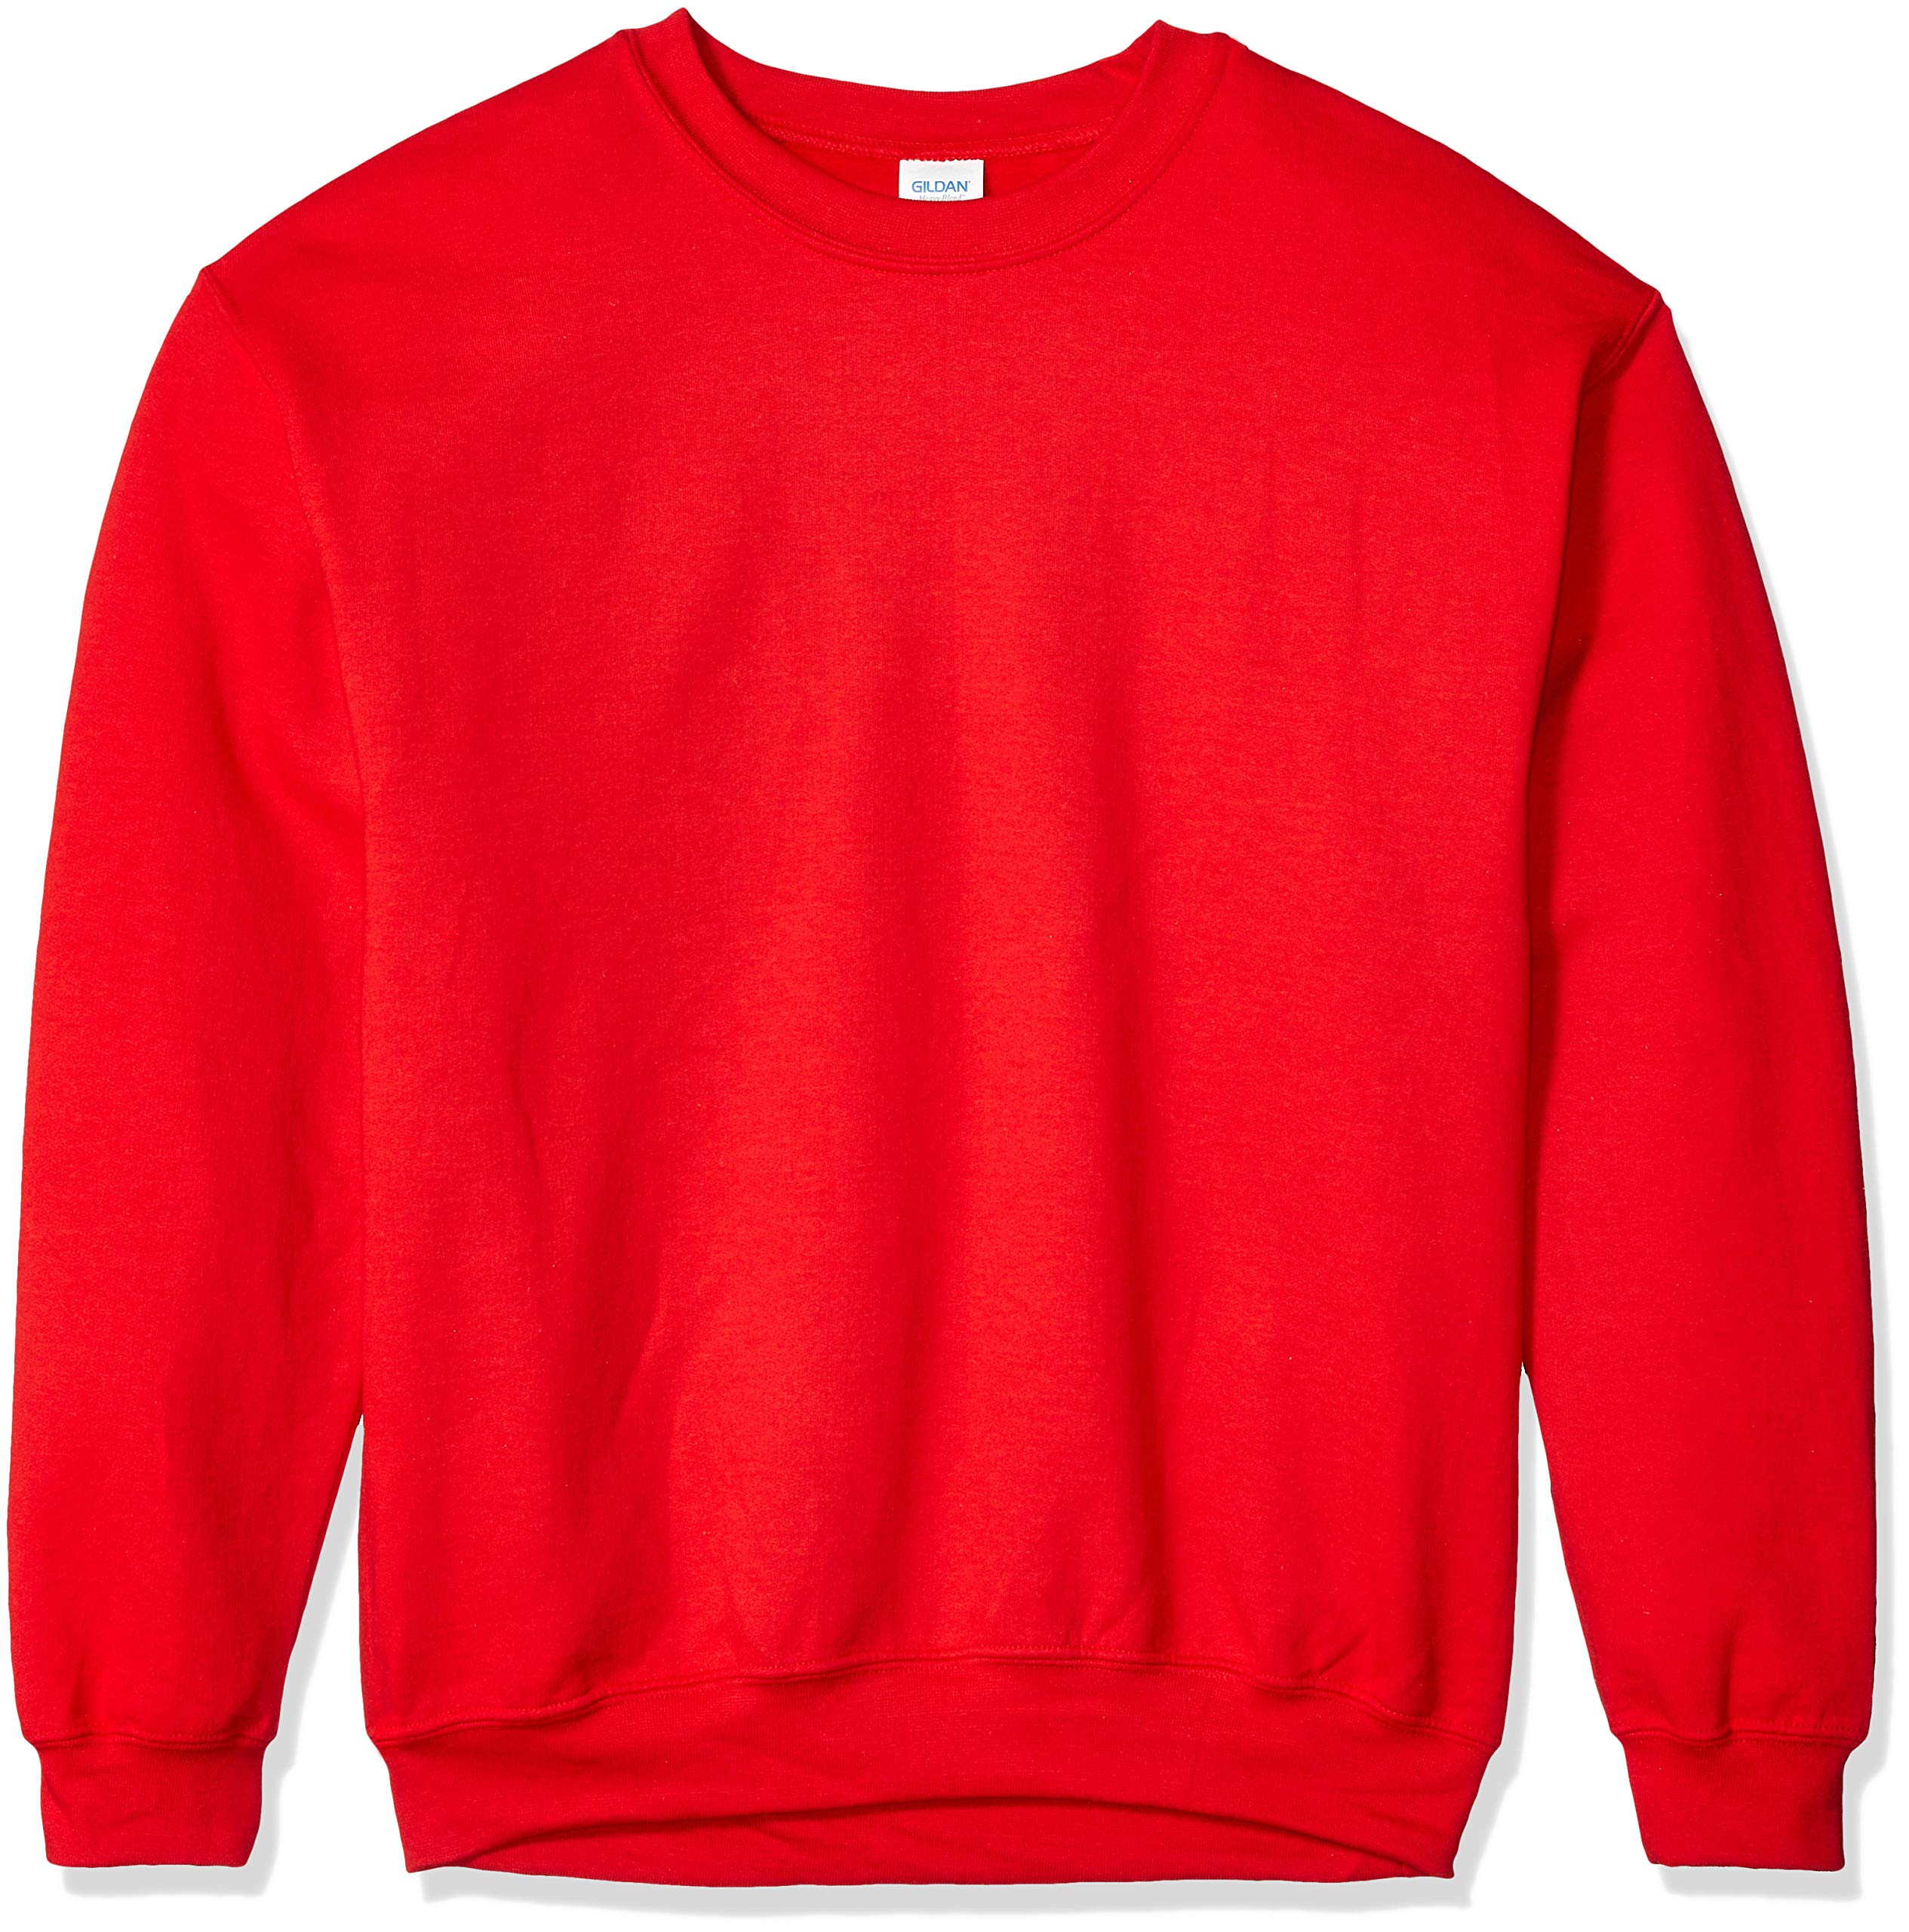 Gildan Men's Fleece Crewneck Sweatshirt, Red, X-Large by Gildan